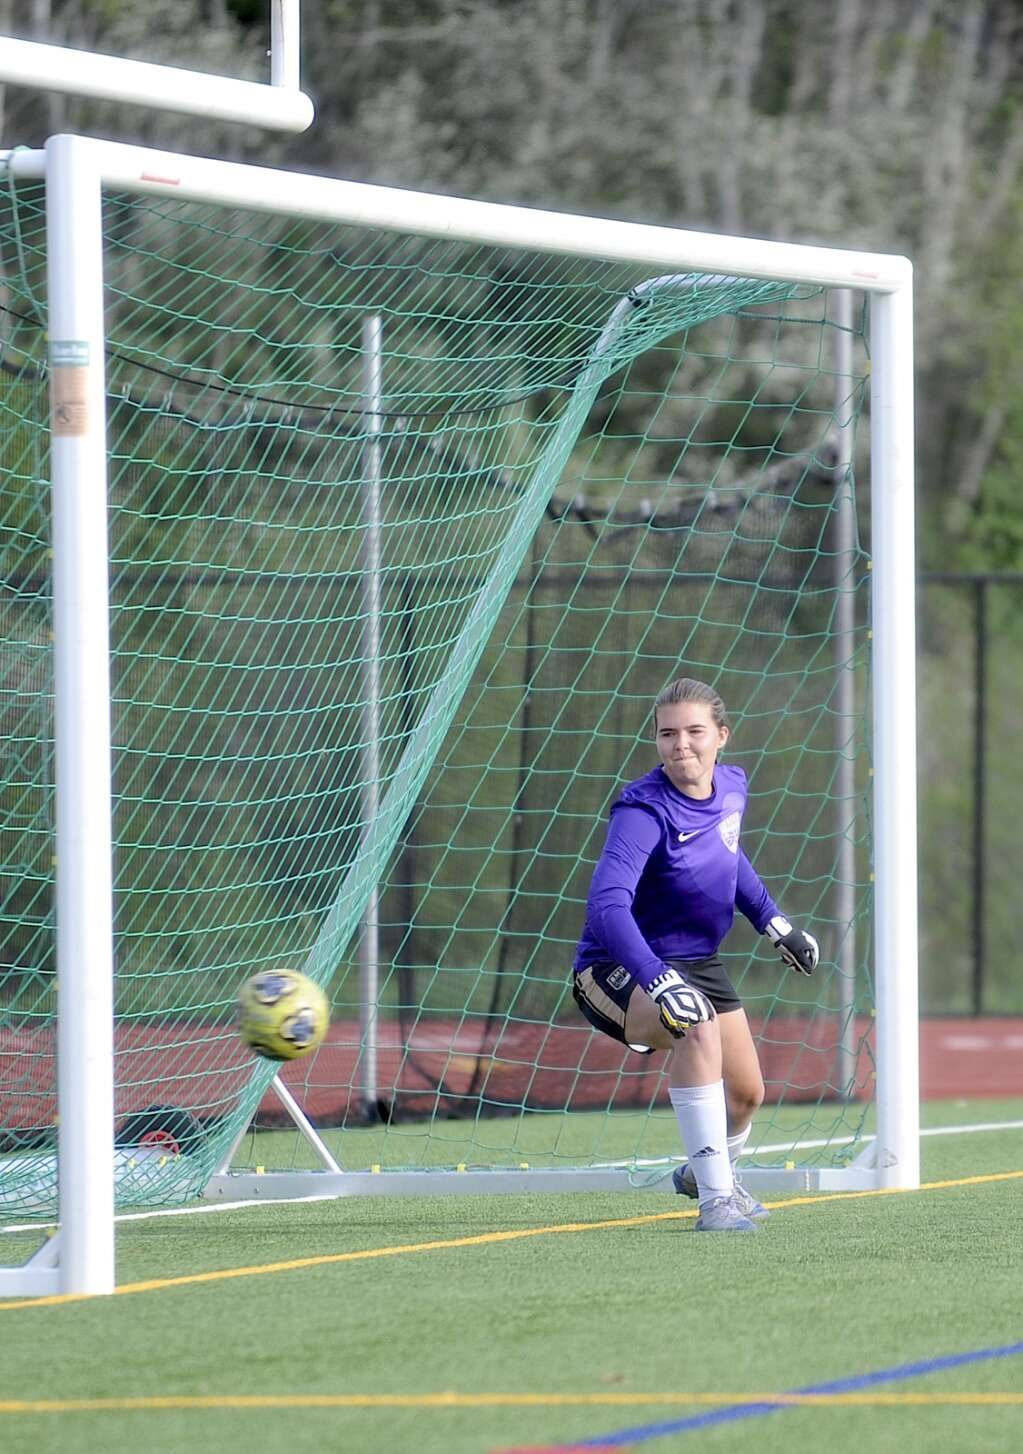 The Battle Mountain goalkeepr watches a penalty kick float into the net during a game at Steamboat Springs on Tuesday night. (Shelby Reardon)